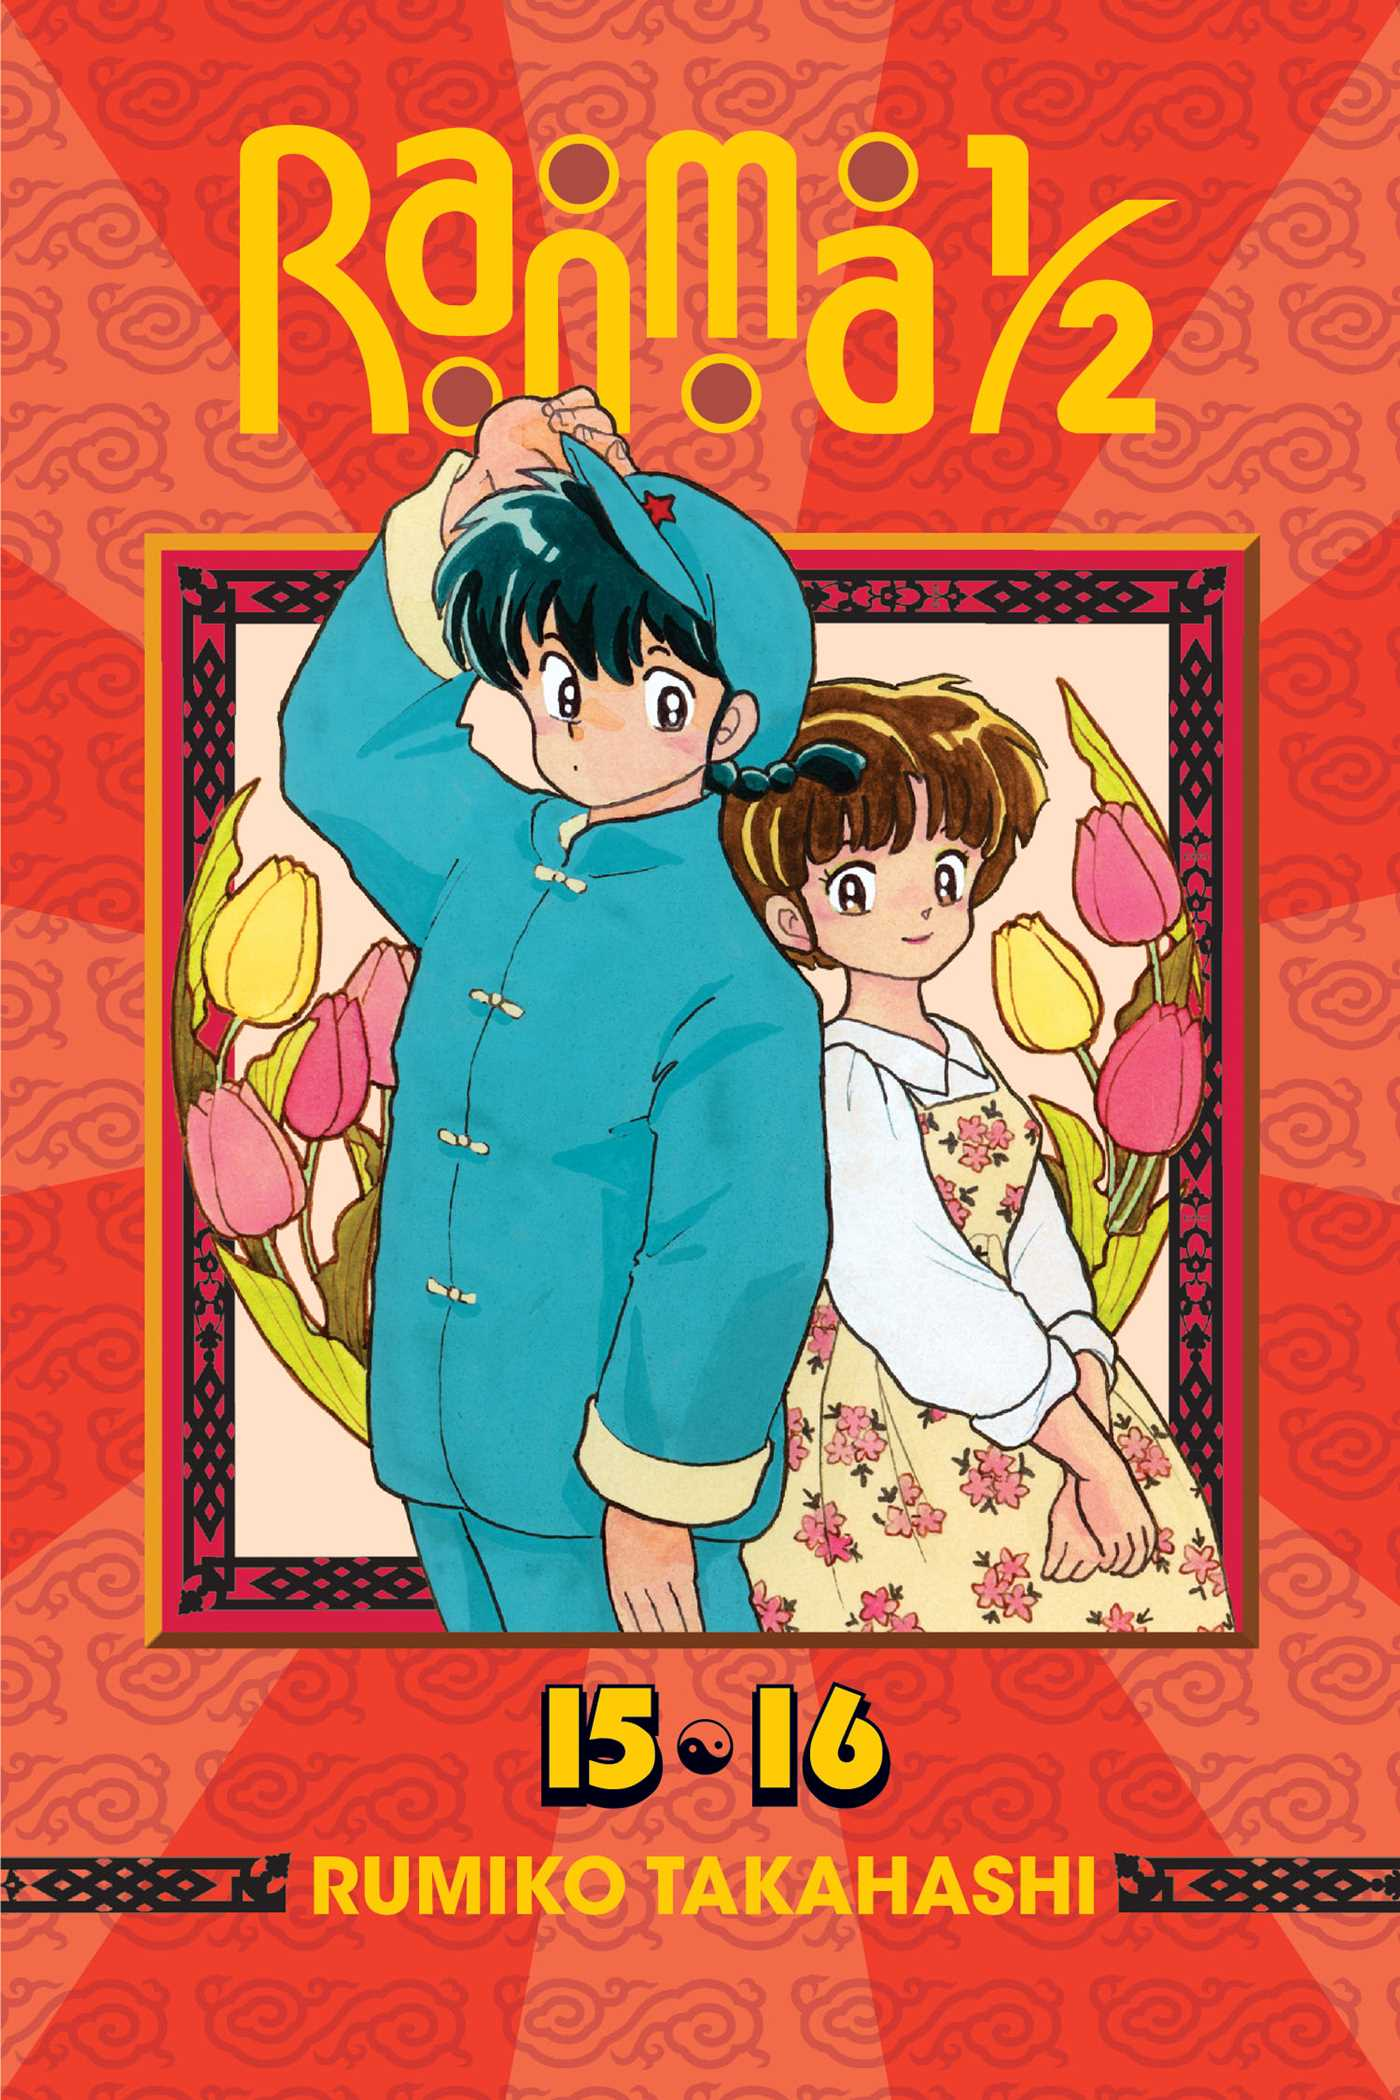 Ranma-1-2-(2-in-1-edition)-vol-8-9781421566214_hr